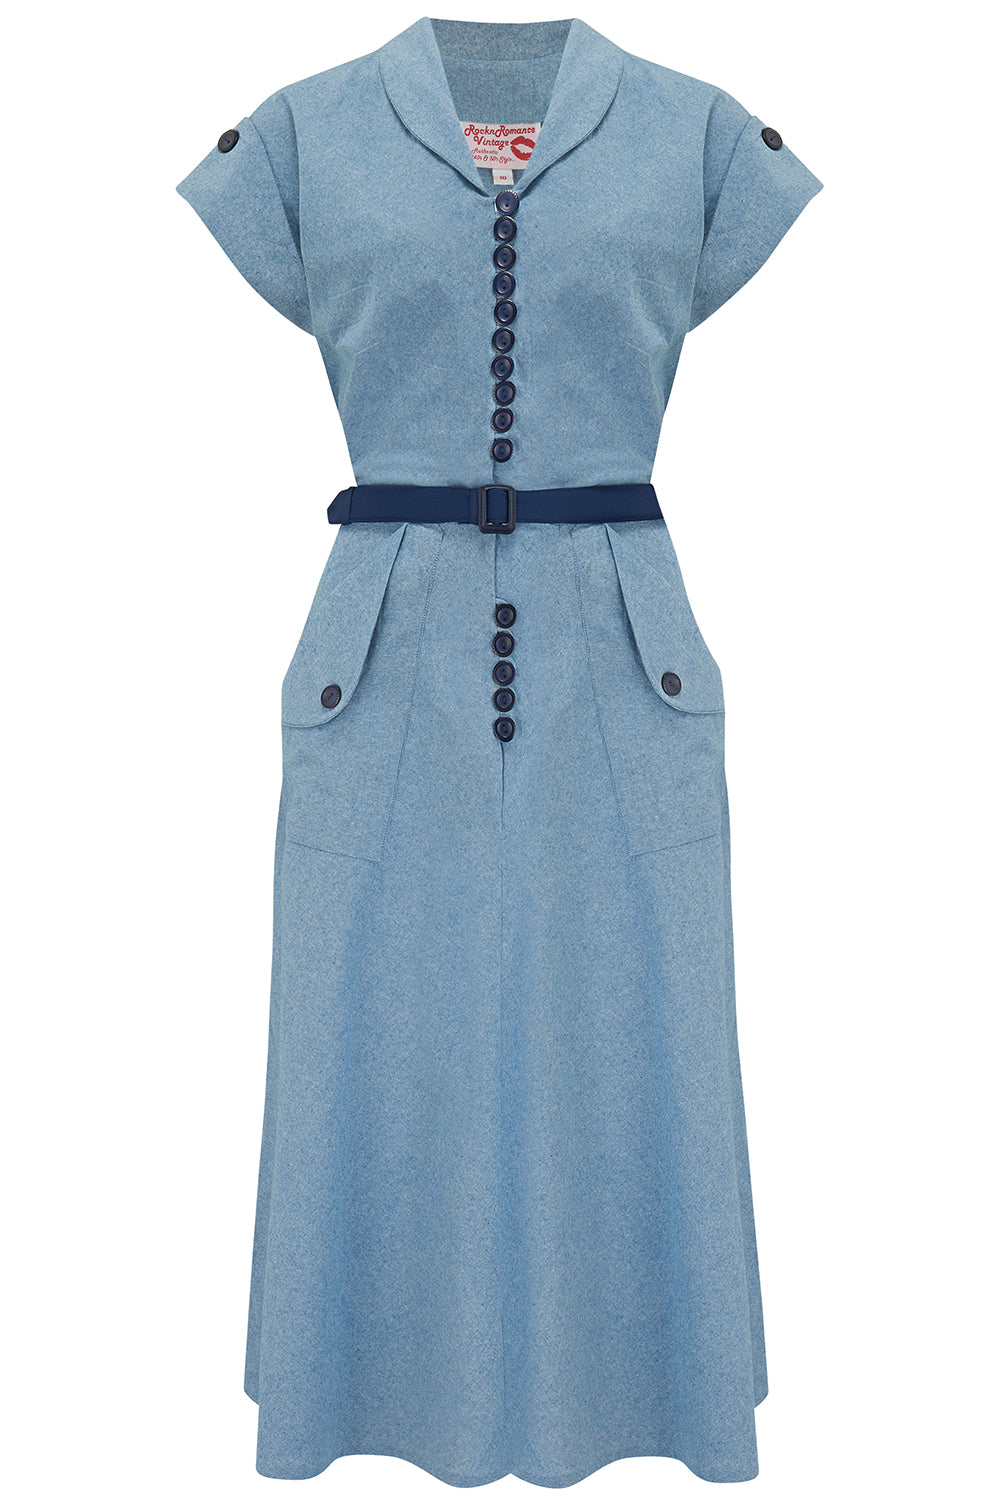 Pin Up Dresses | Pinup Clothing & Fashion The Casey Dress in Lightweight Denim Cotton Chambray True  Authentic 1950s Vintage Style £49.00 AT vintagedancer.com